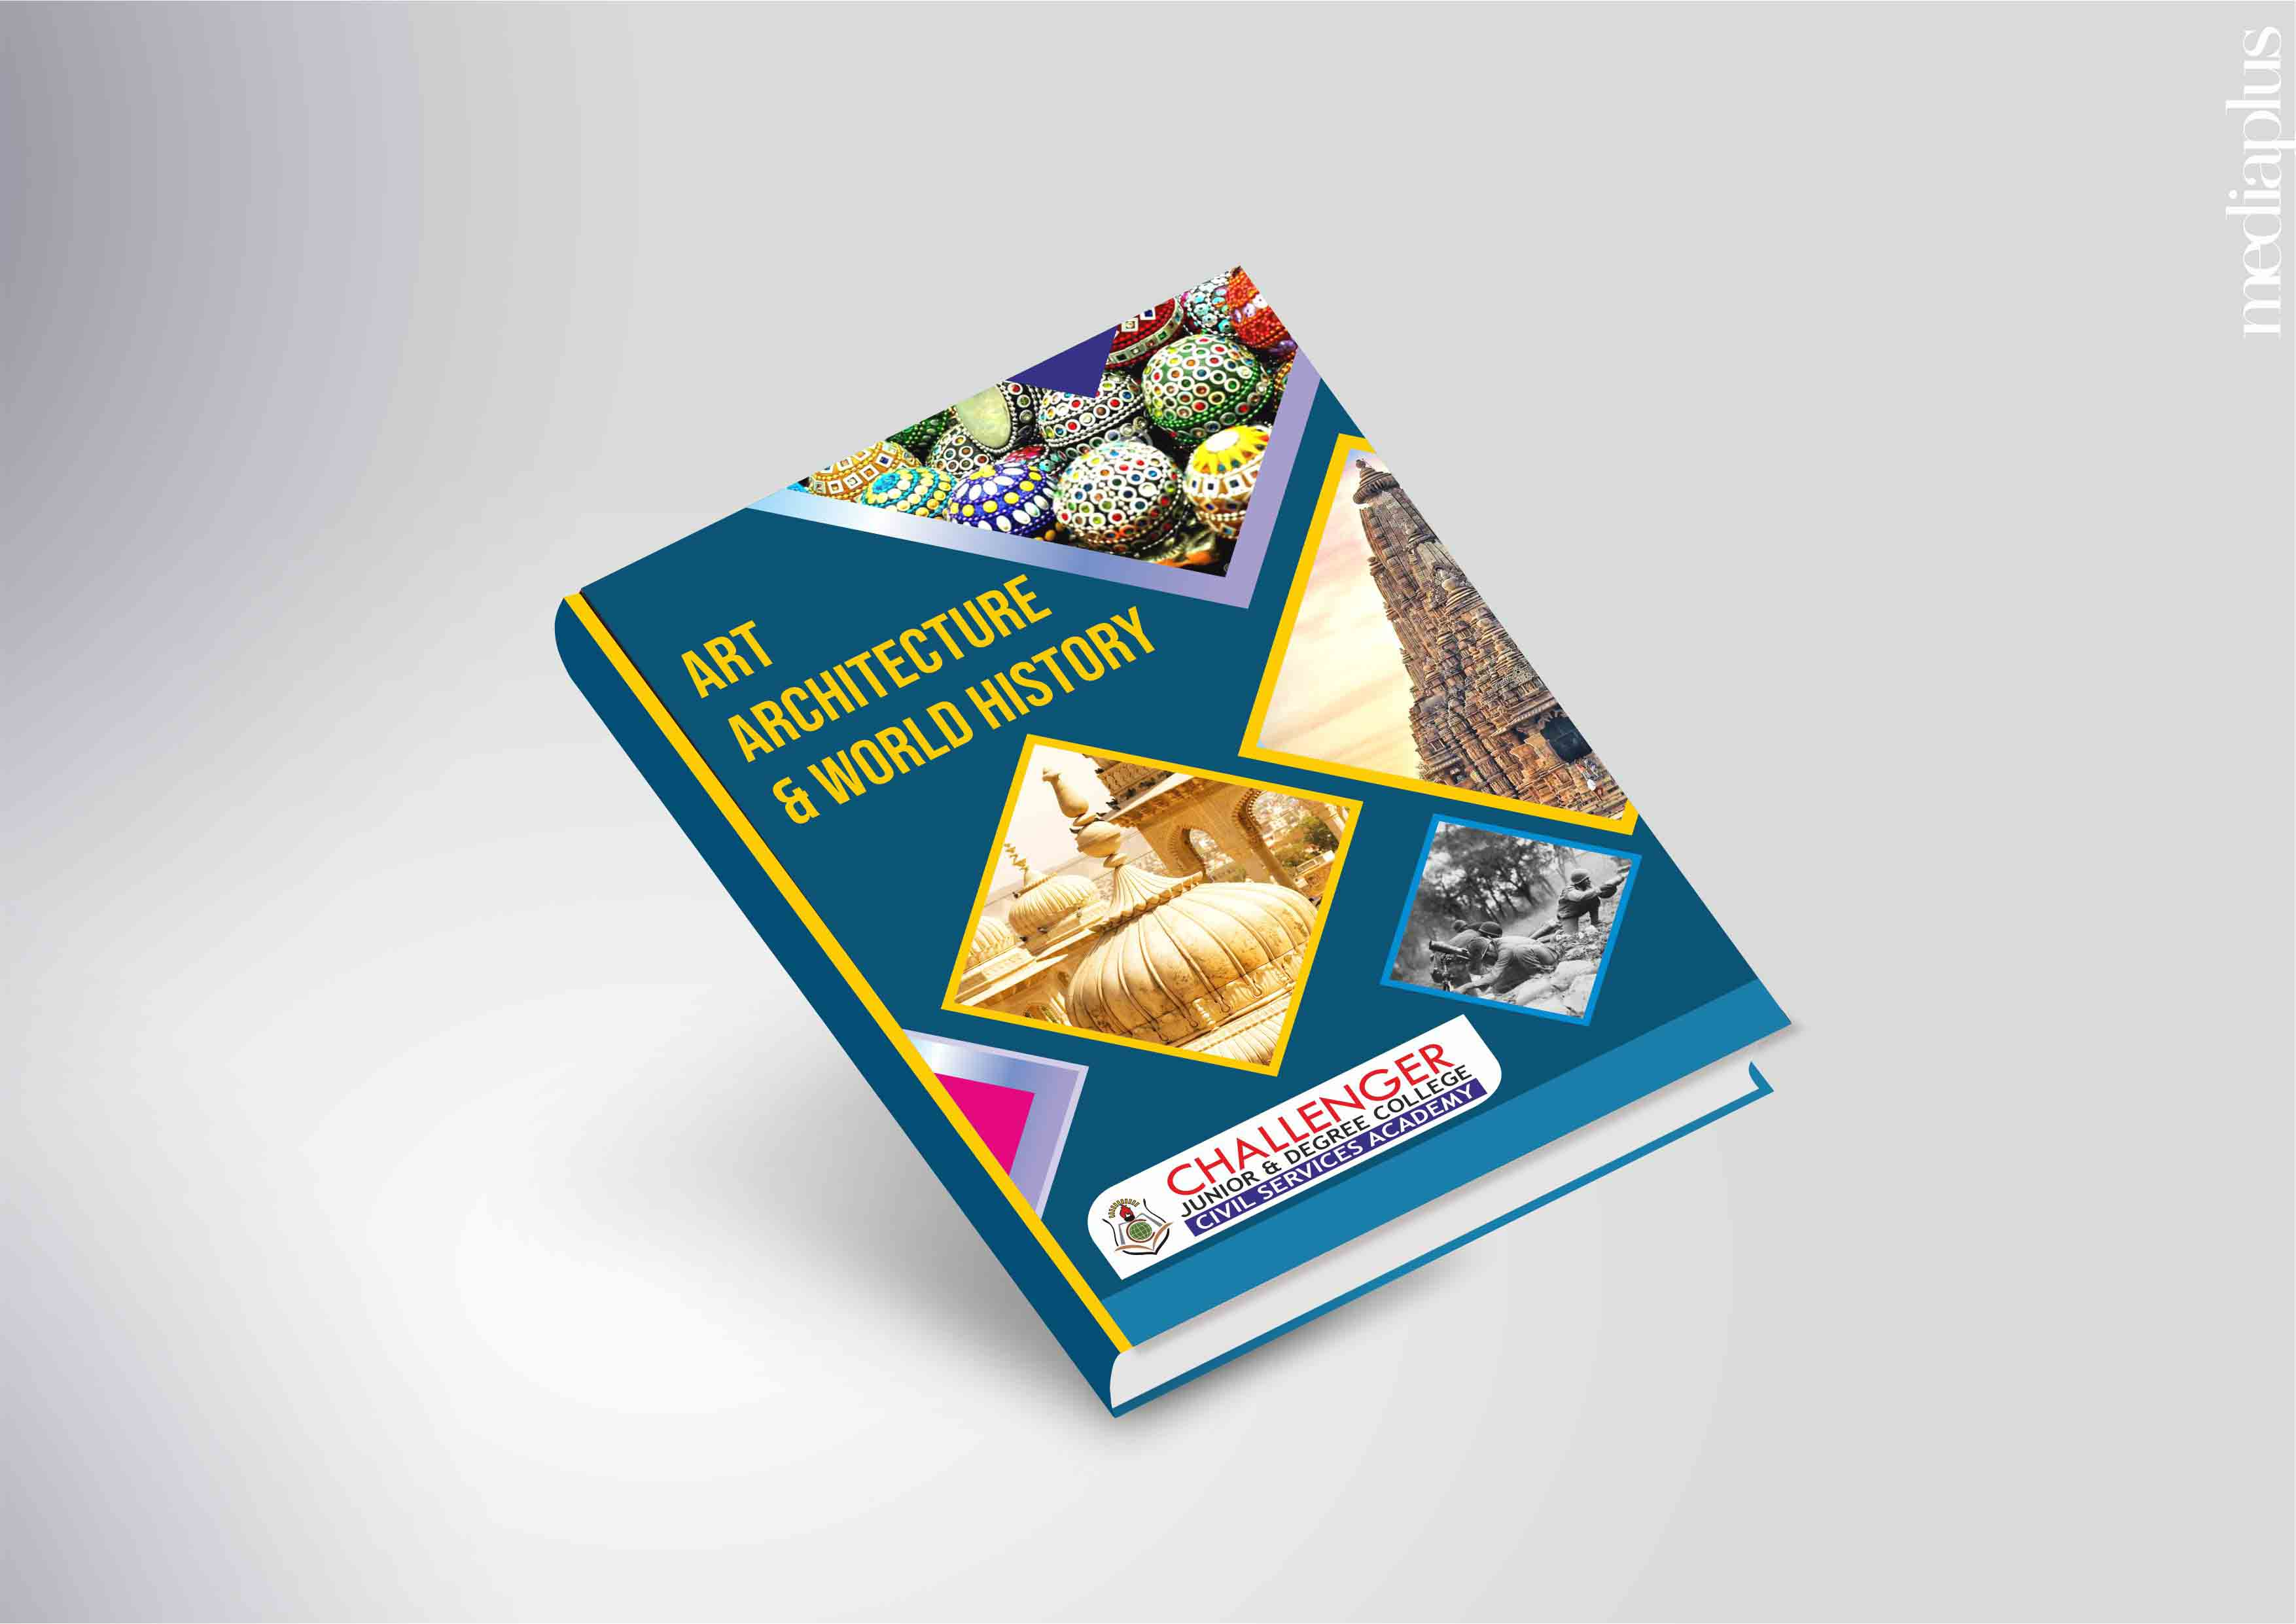 Text Book Design Printing and Publishing Services by Media Plus